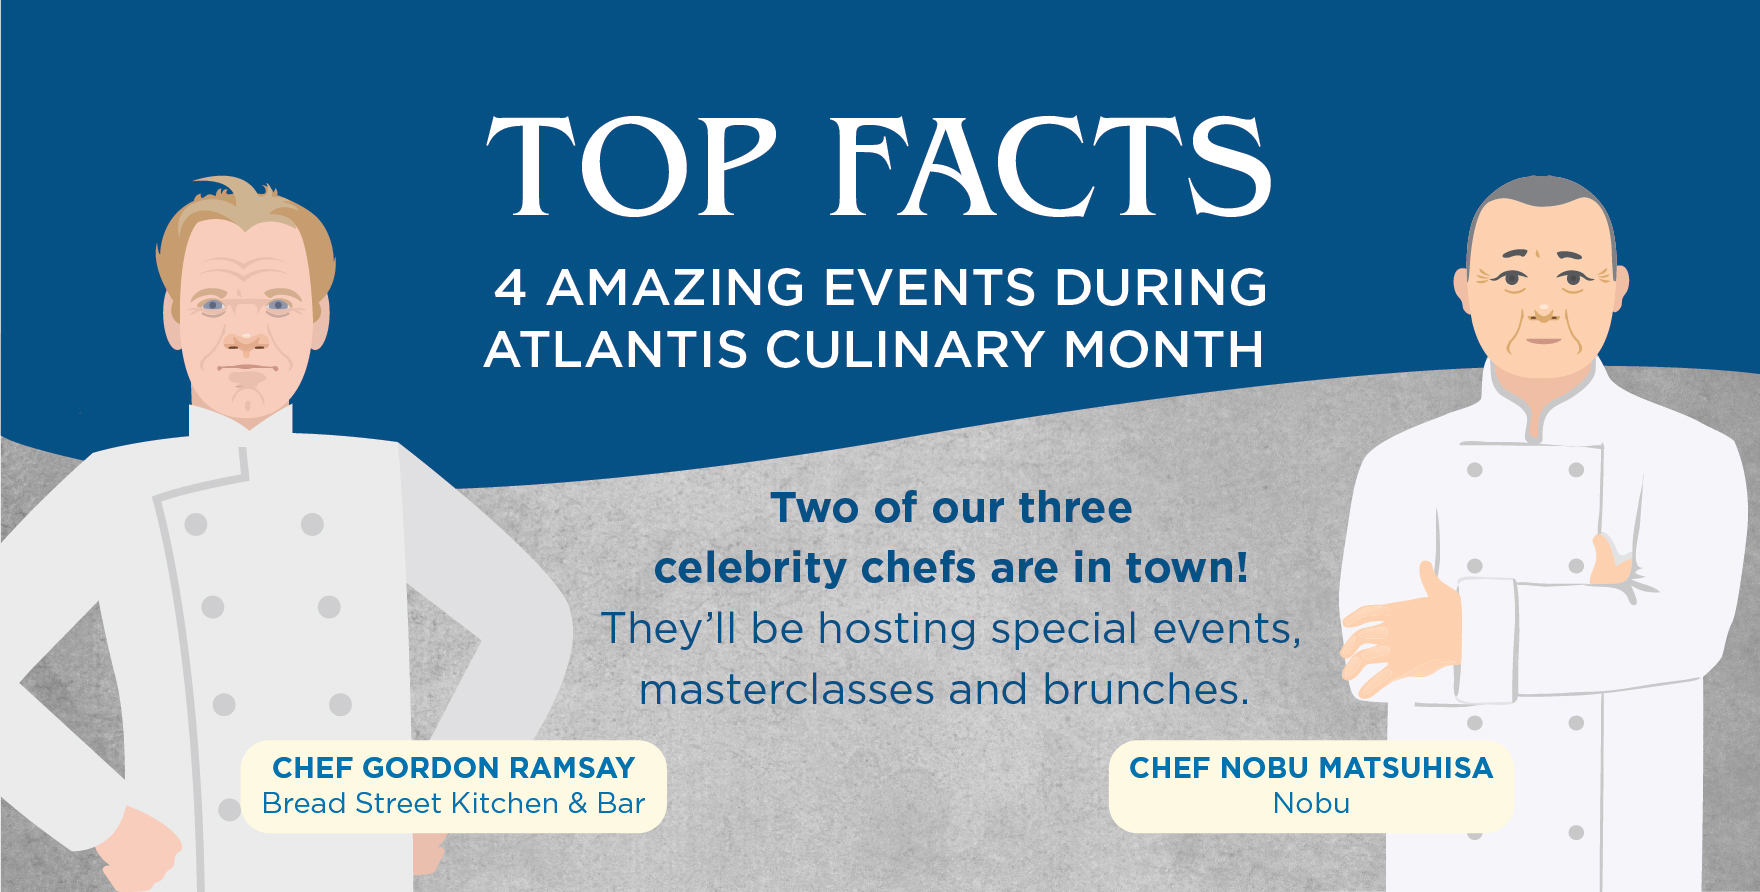 4 Amazing Events to Look Forward to During Atlantis Culinary Month